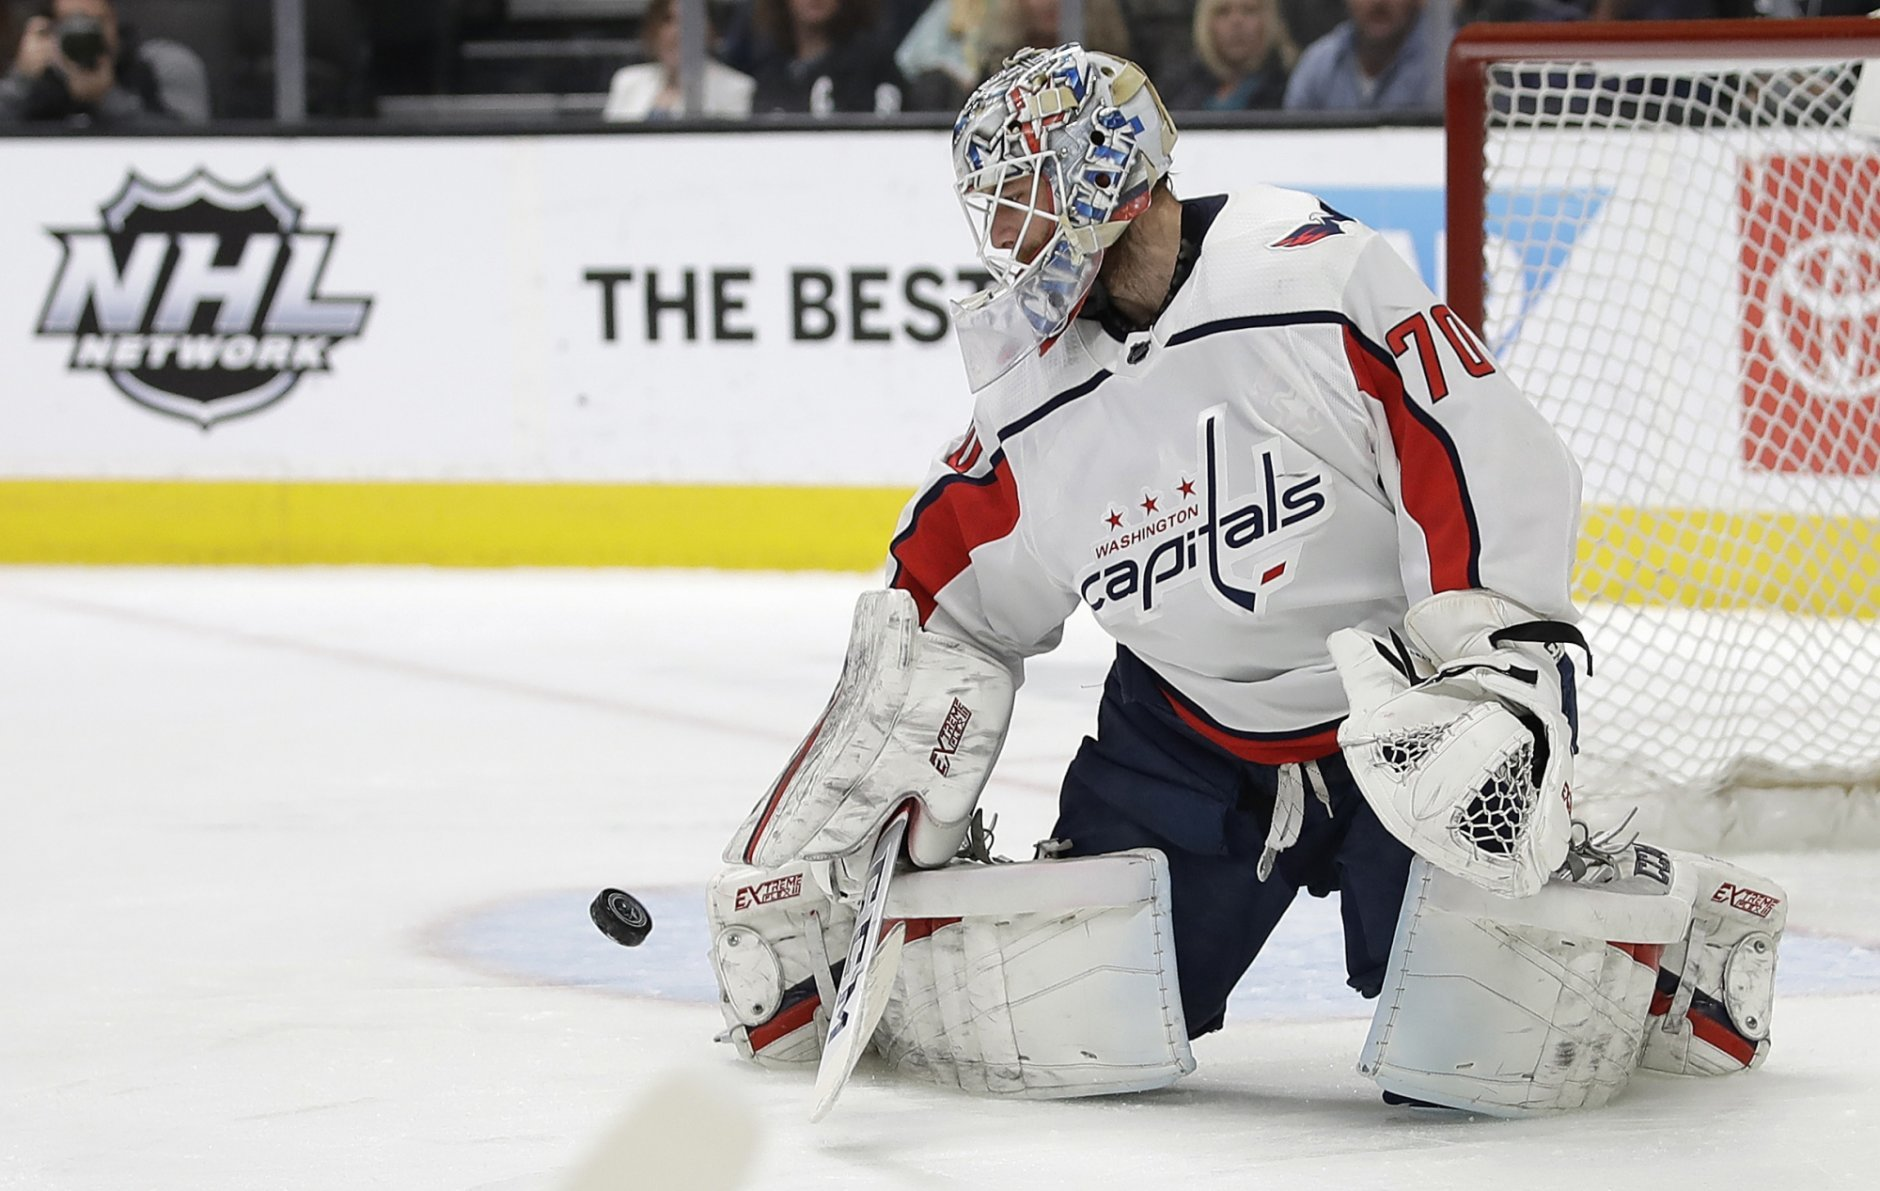 Washington Capitals goalie Braden Holtby blocks a shot from the San Jose Sharks in the first period of an NHL hockey game Thursday, Feb. 14, 2019, in San Jose, Calif. (AP Photo/Ben Margot)